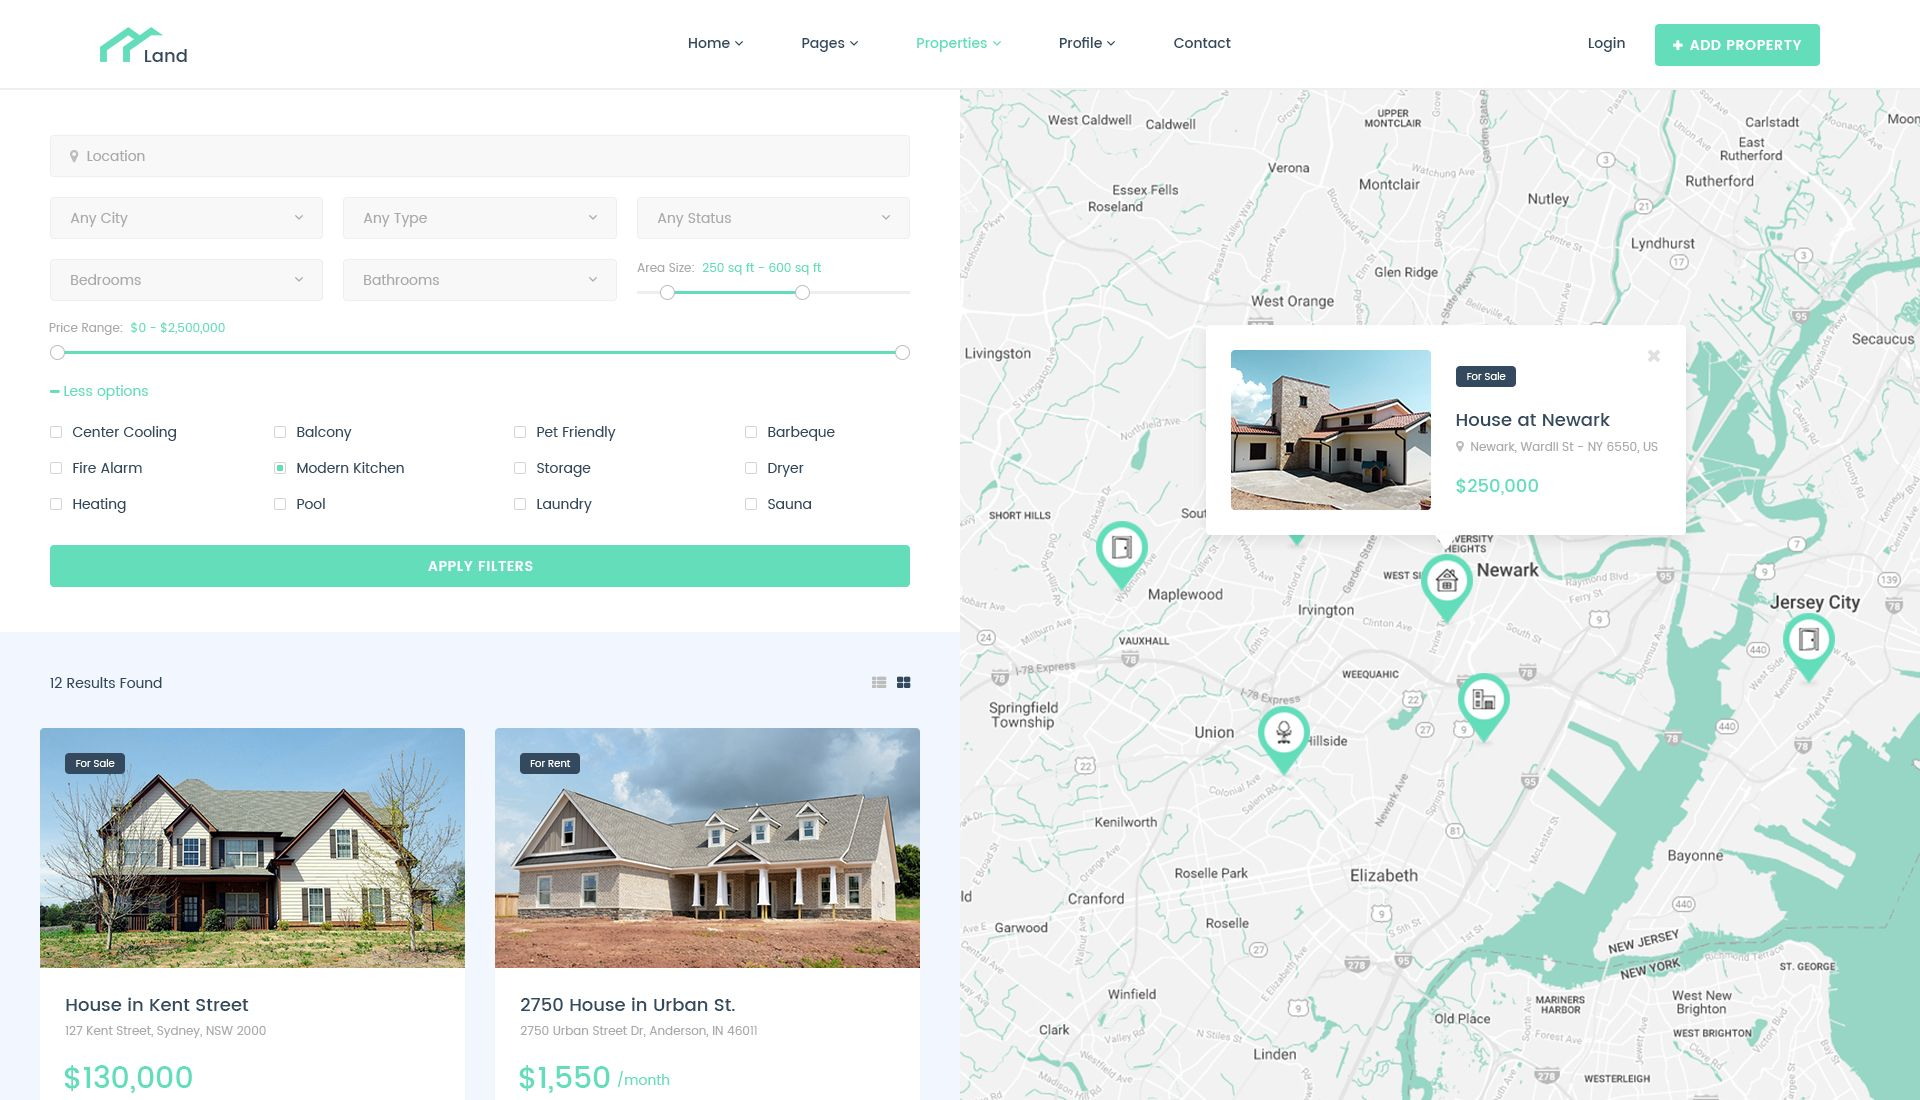 Land Real Estate Property Listing Psd Template Property